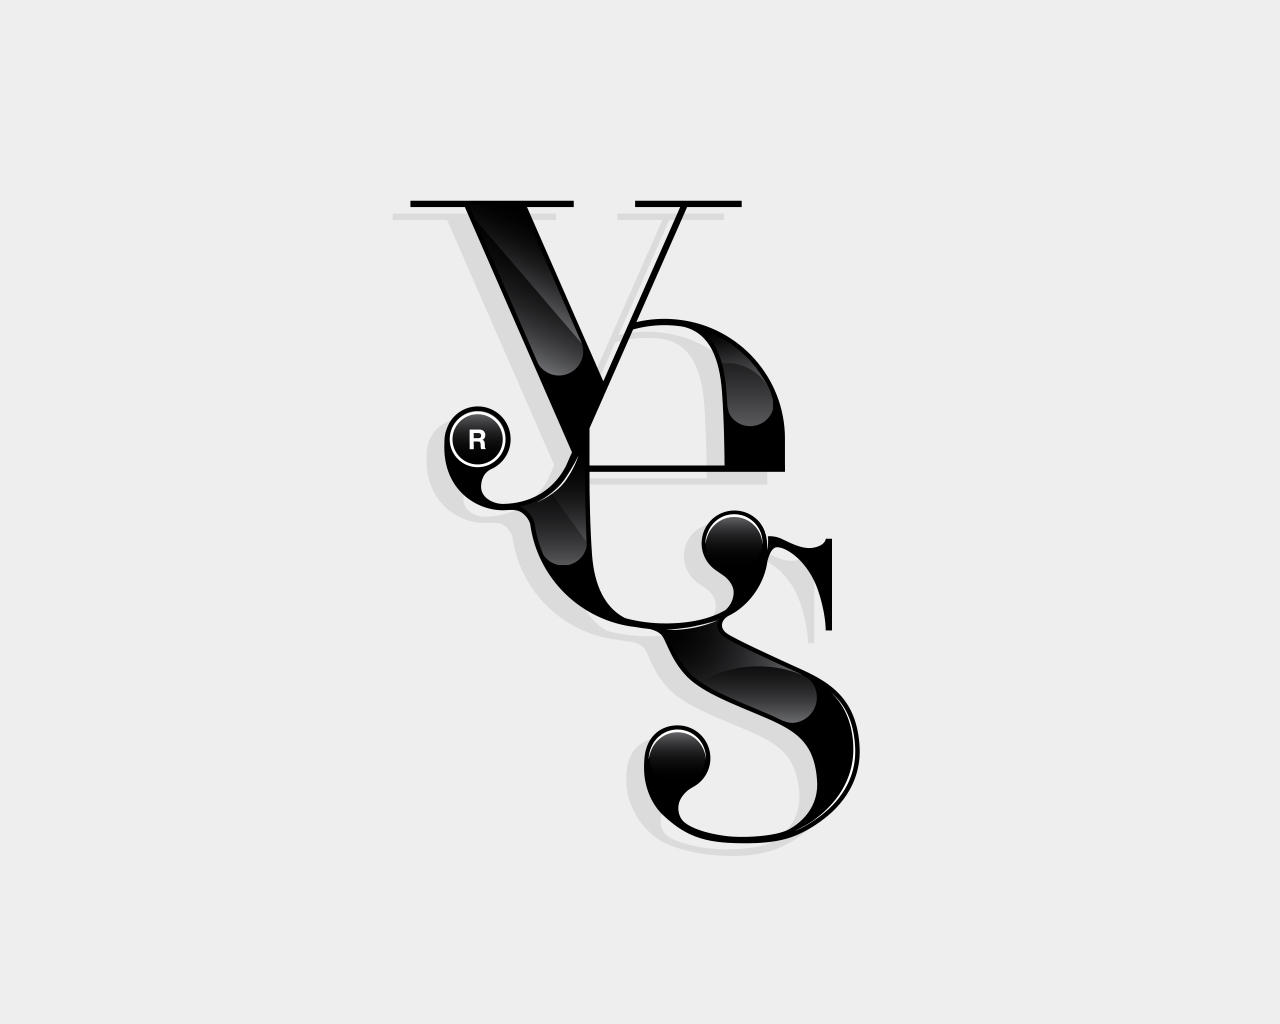 Monogram logotypes. Unique Design by Pixelin_Studio - 110479